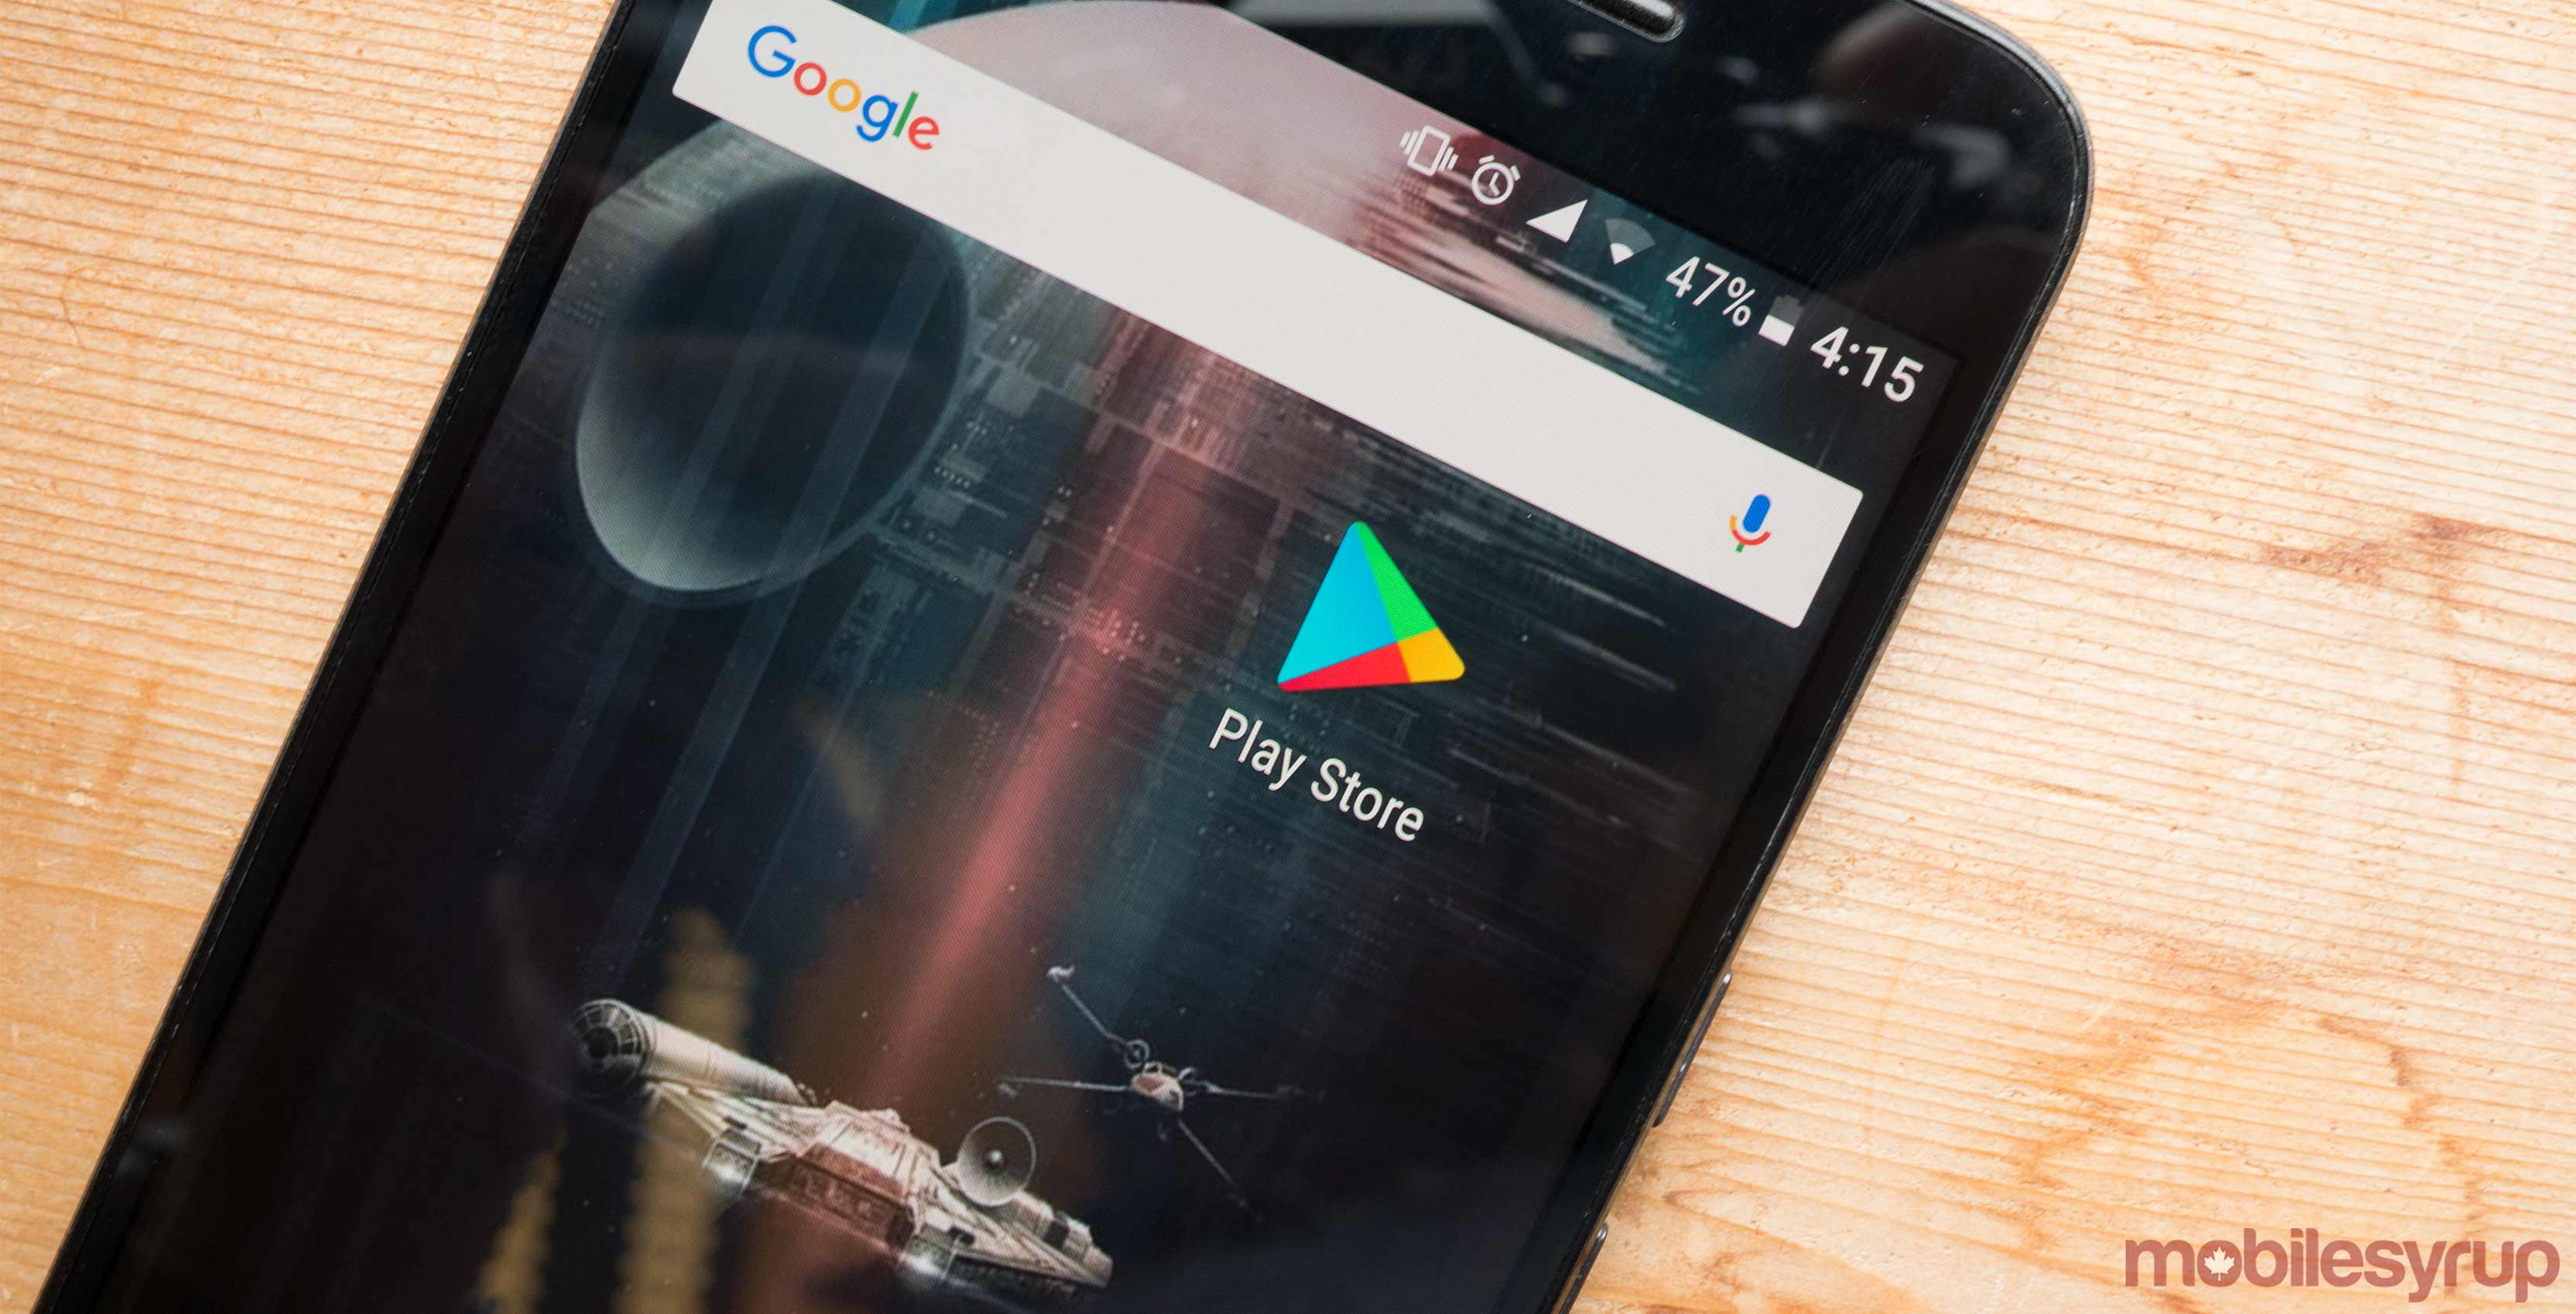 Google Play Store Drops White Shopping Bag From Play Icon